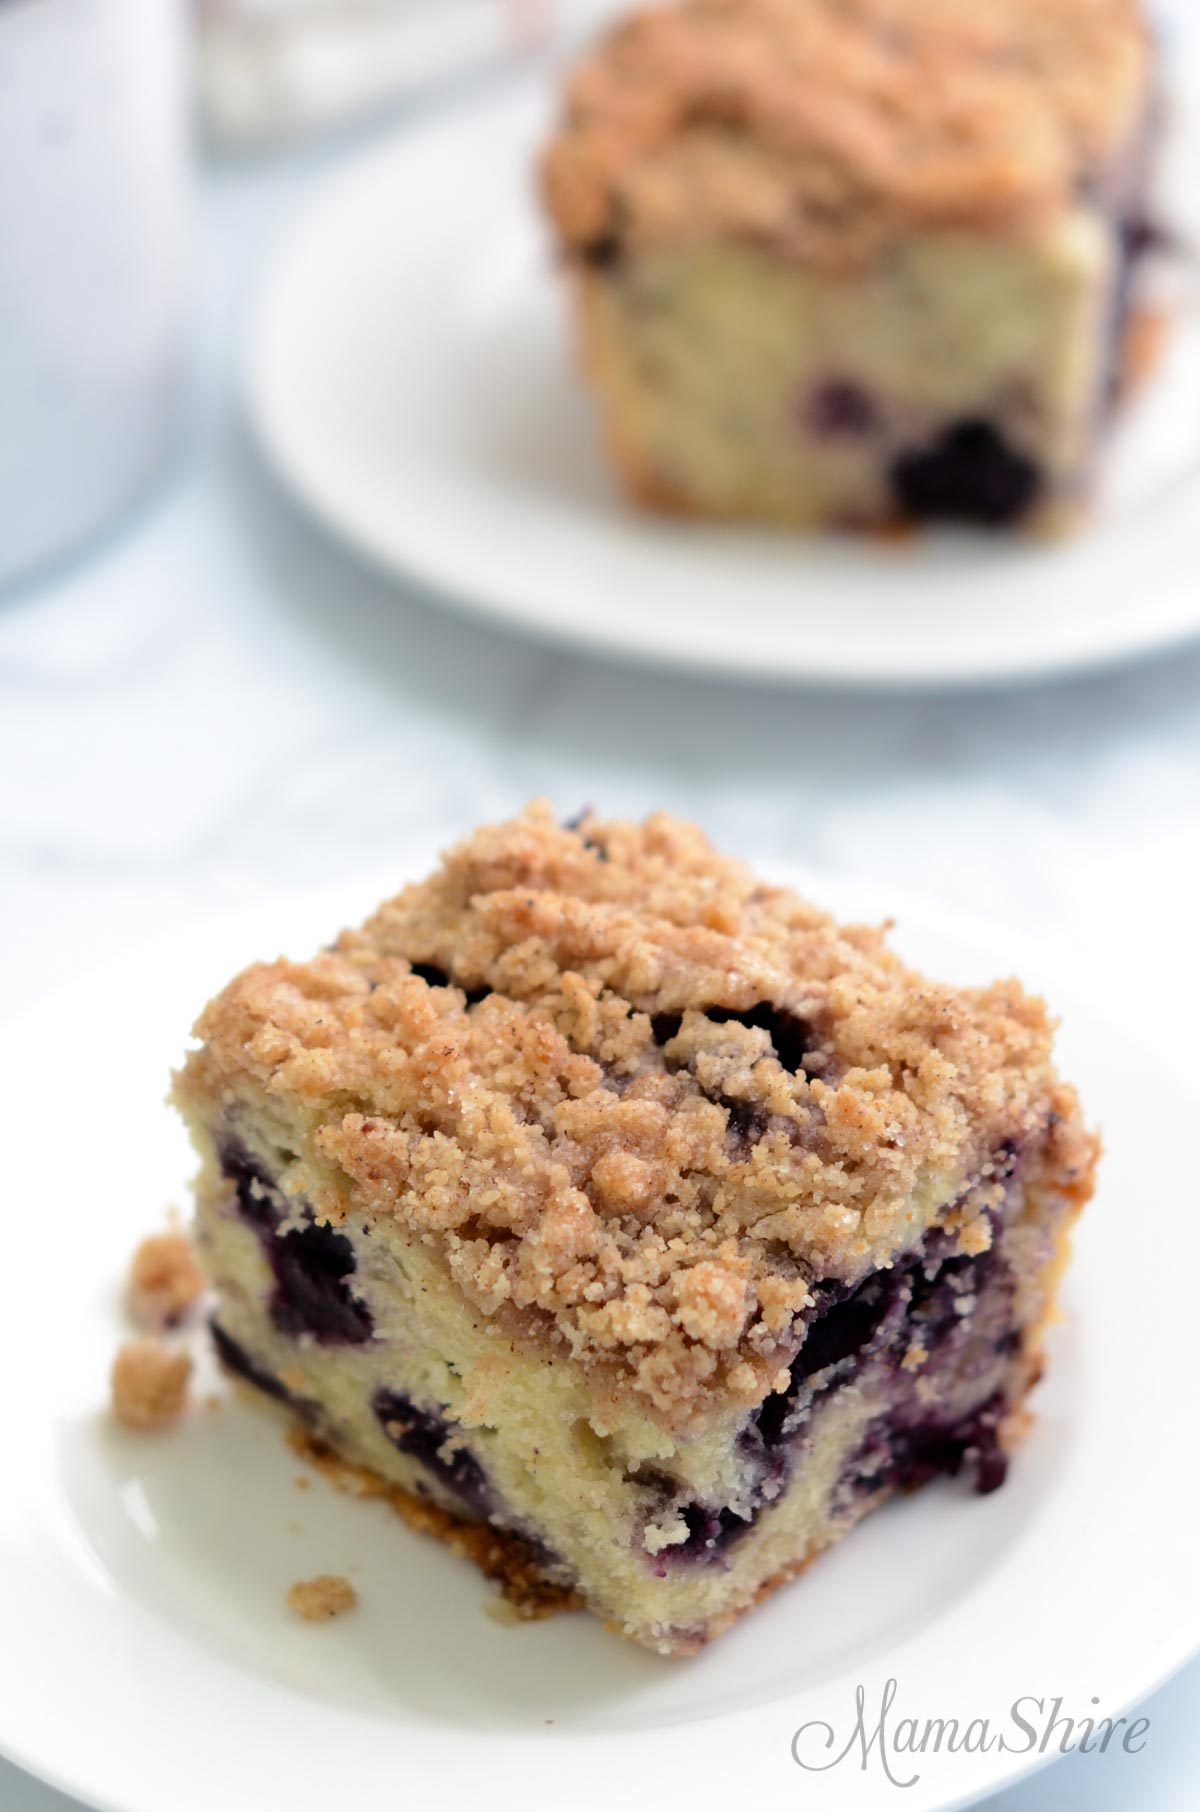 Two servings of gluten-free blueberry coffee cake.